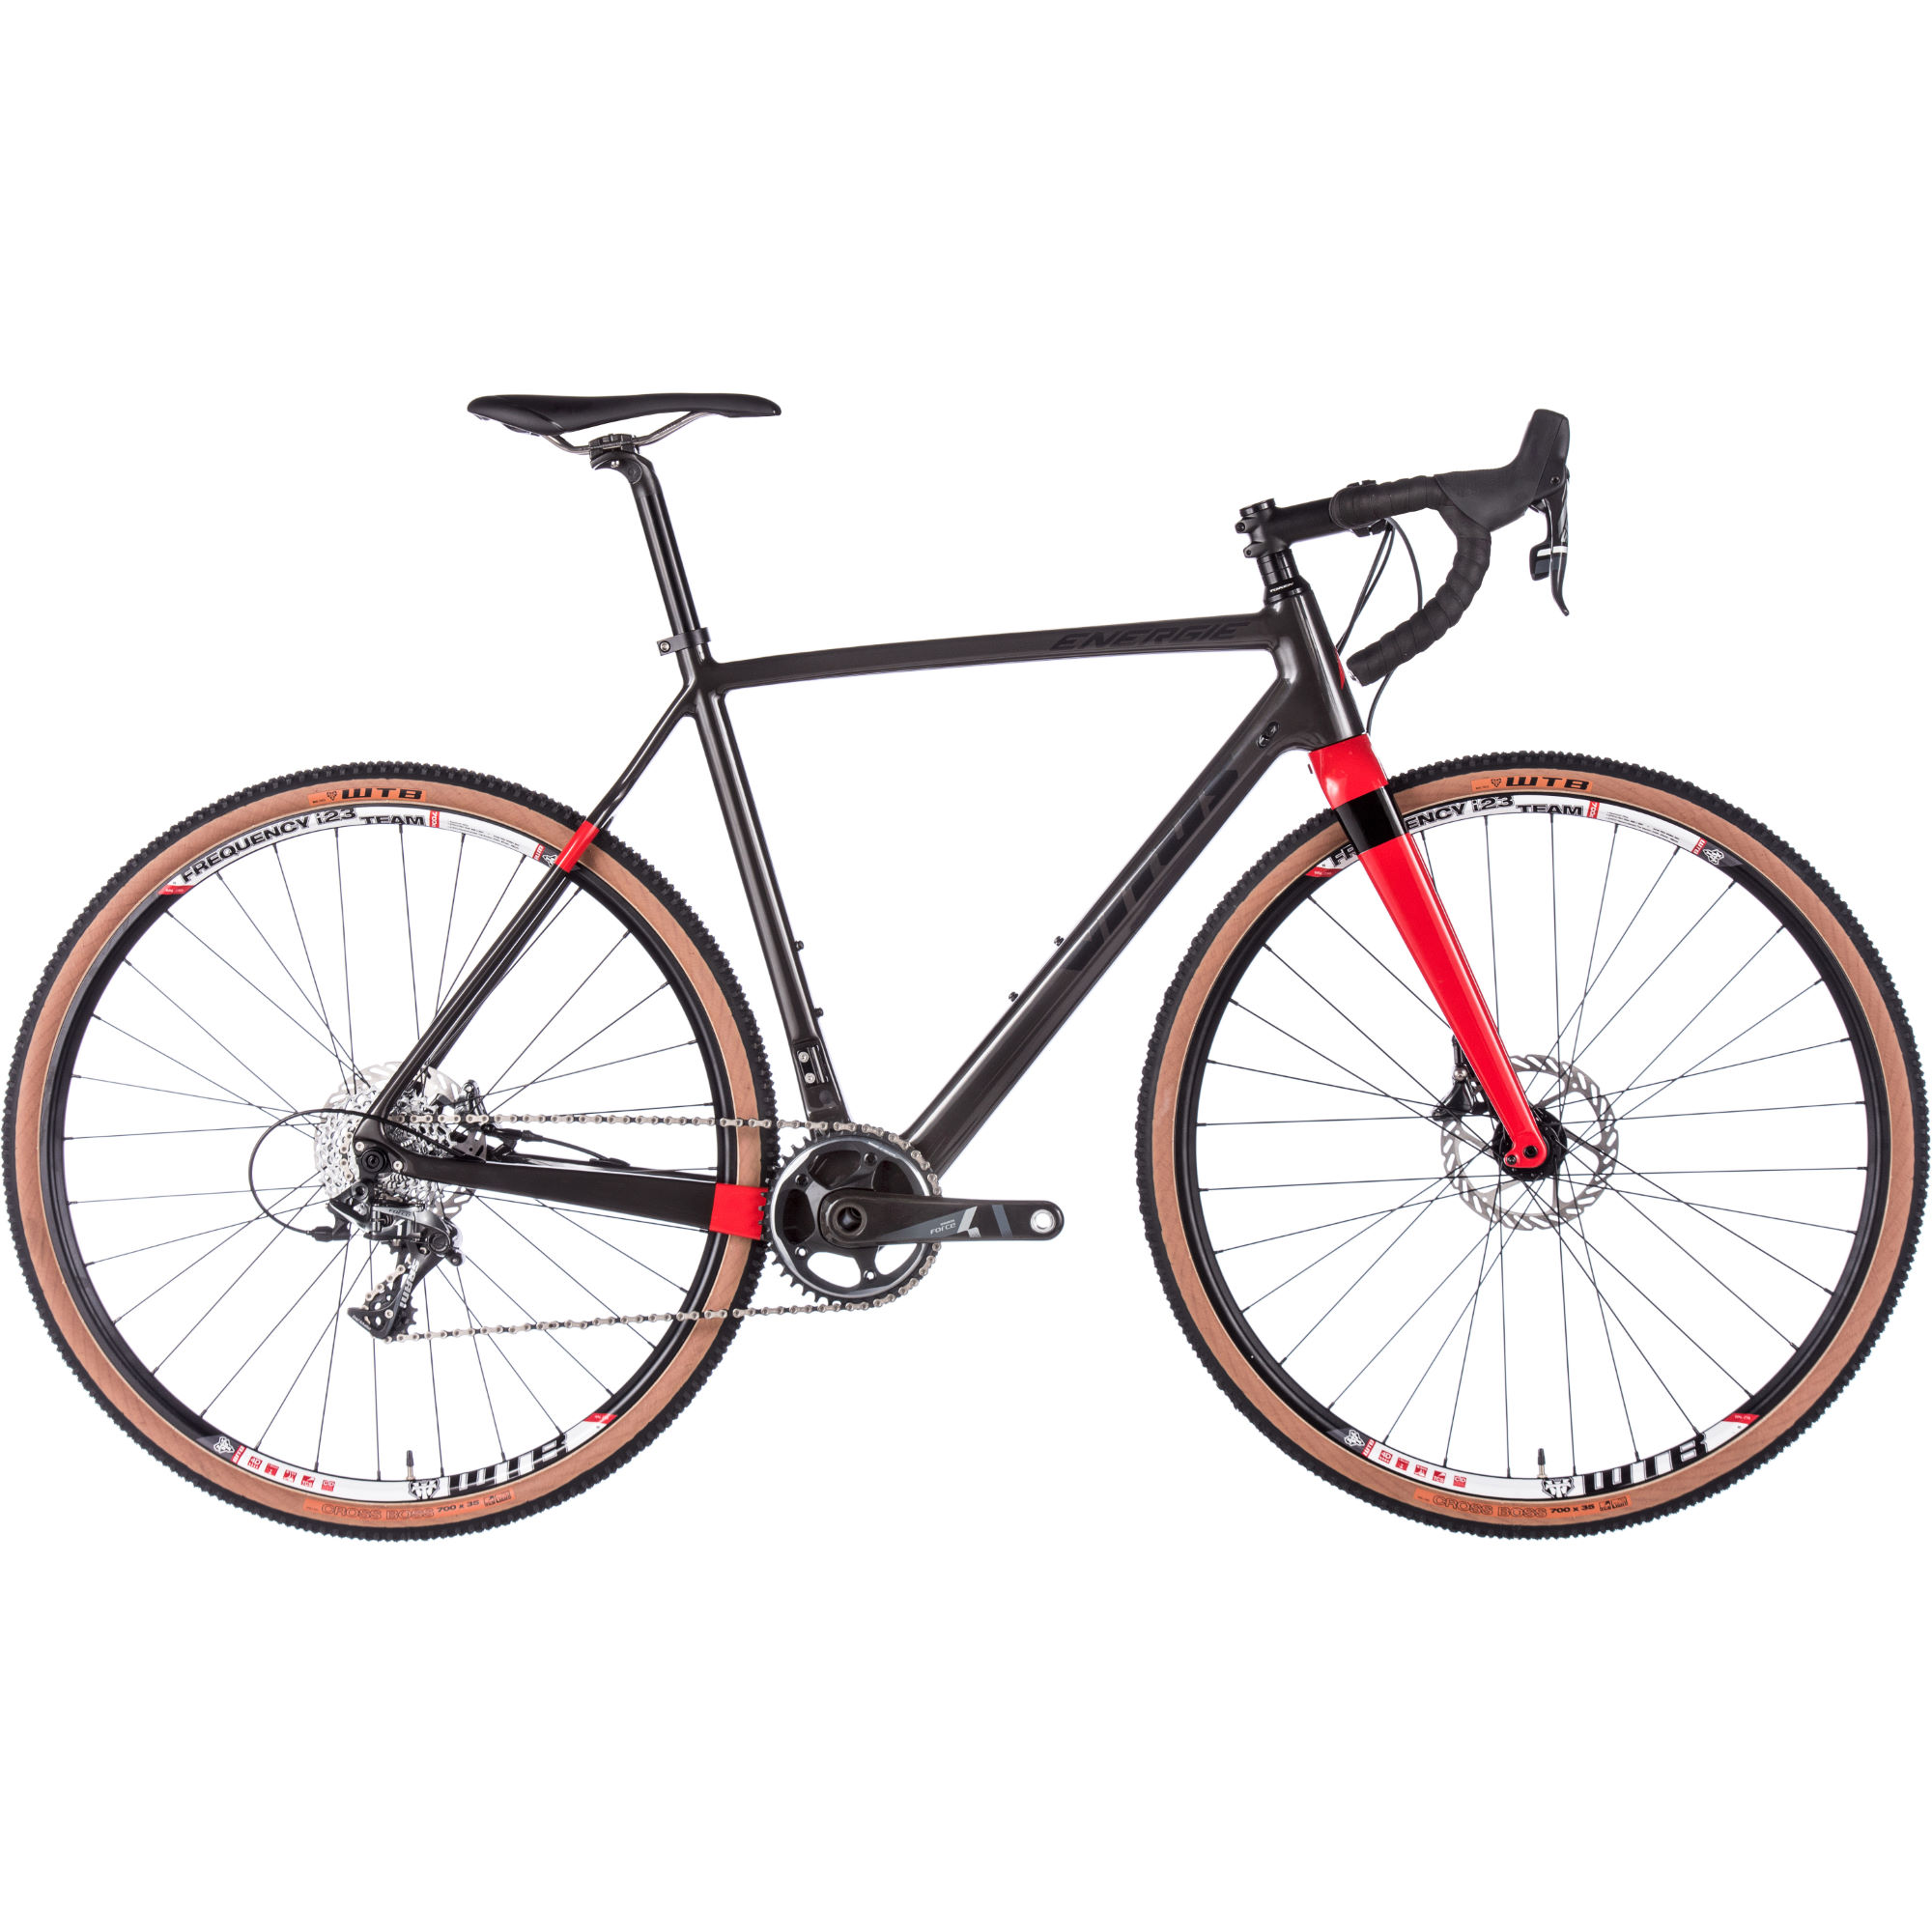 vitus energie carbon crx cyclocross fahrrad sram force. Black Bedroom Furniture Sets. Home Design Ideas